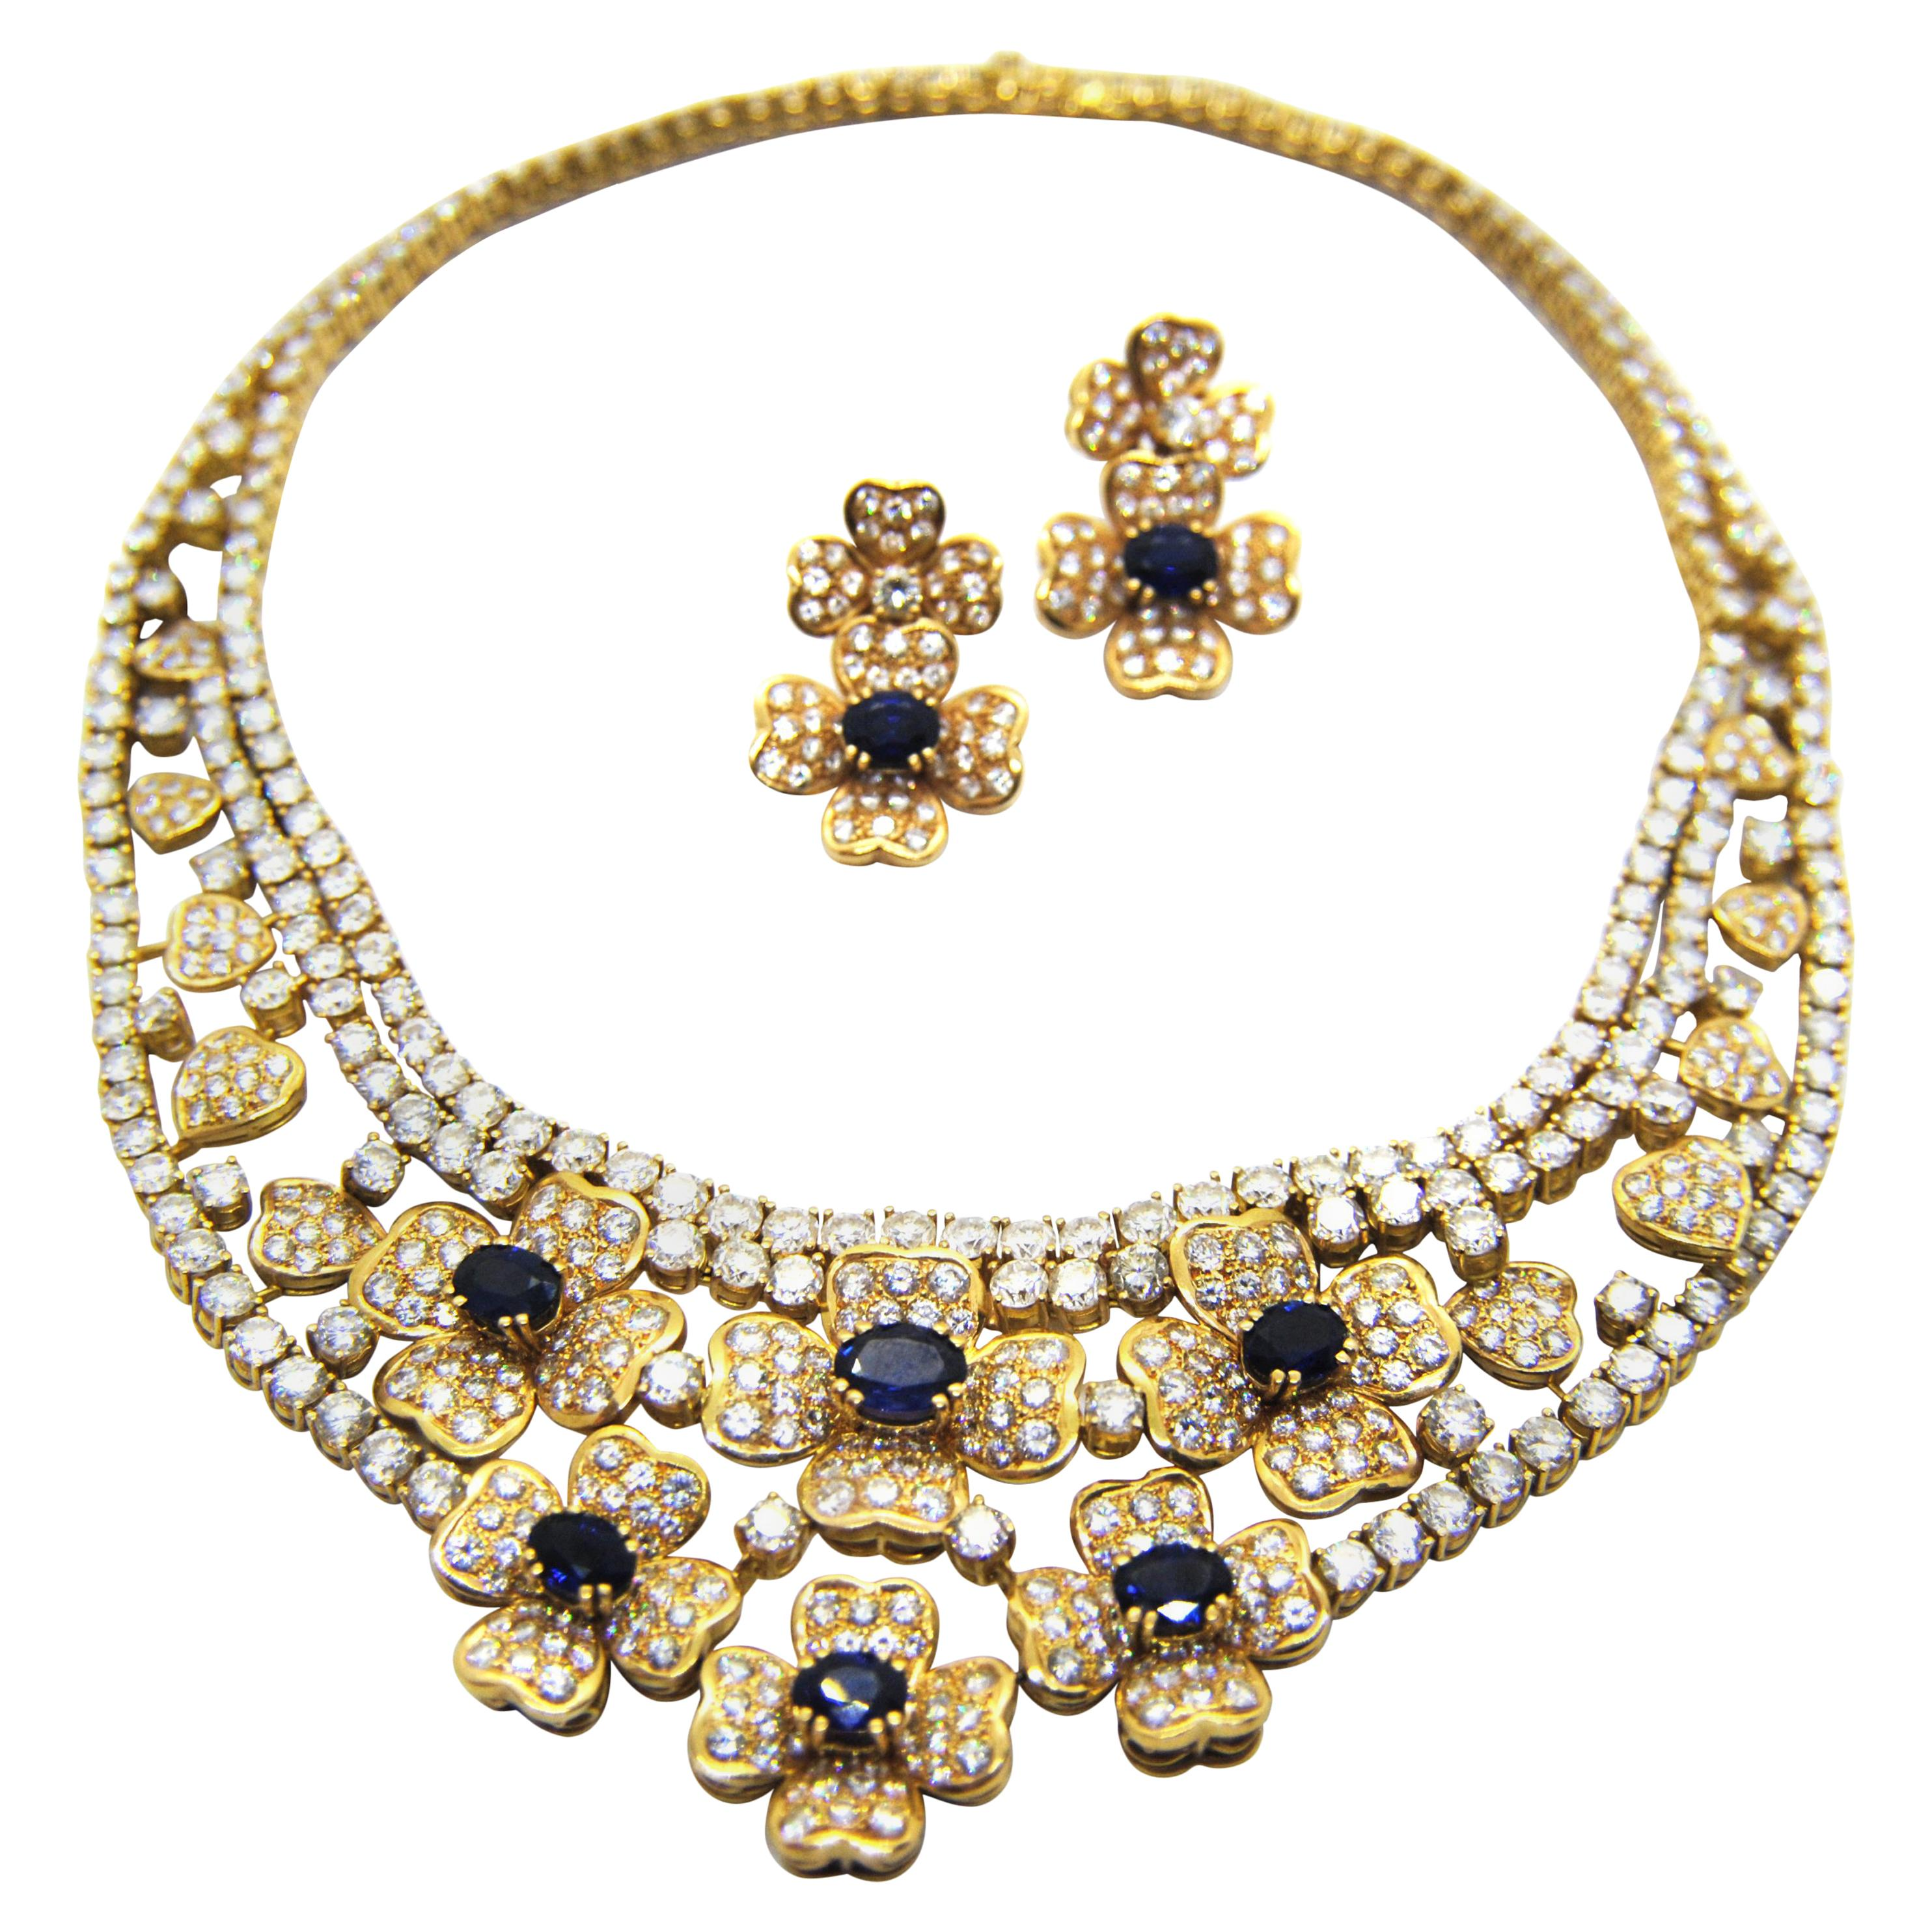 Flowers & Hearts 18kt Gold, Diamonds & Saphires  Necklace and Earring Suite